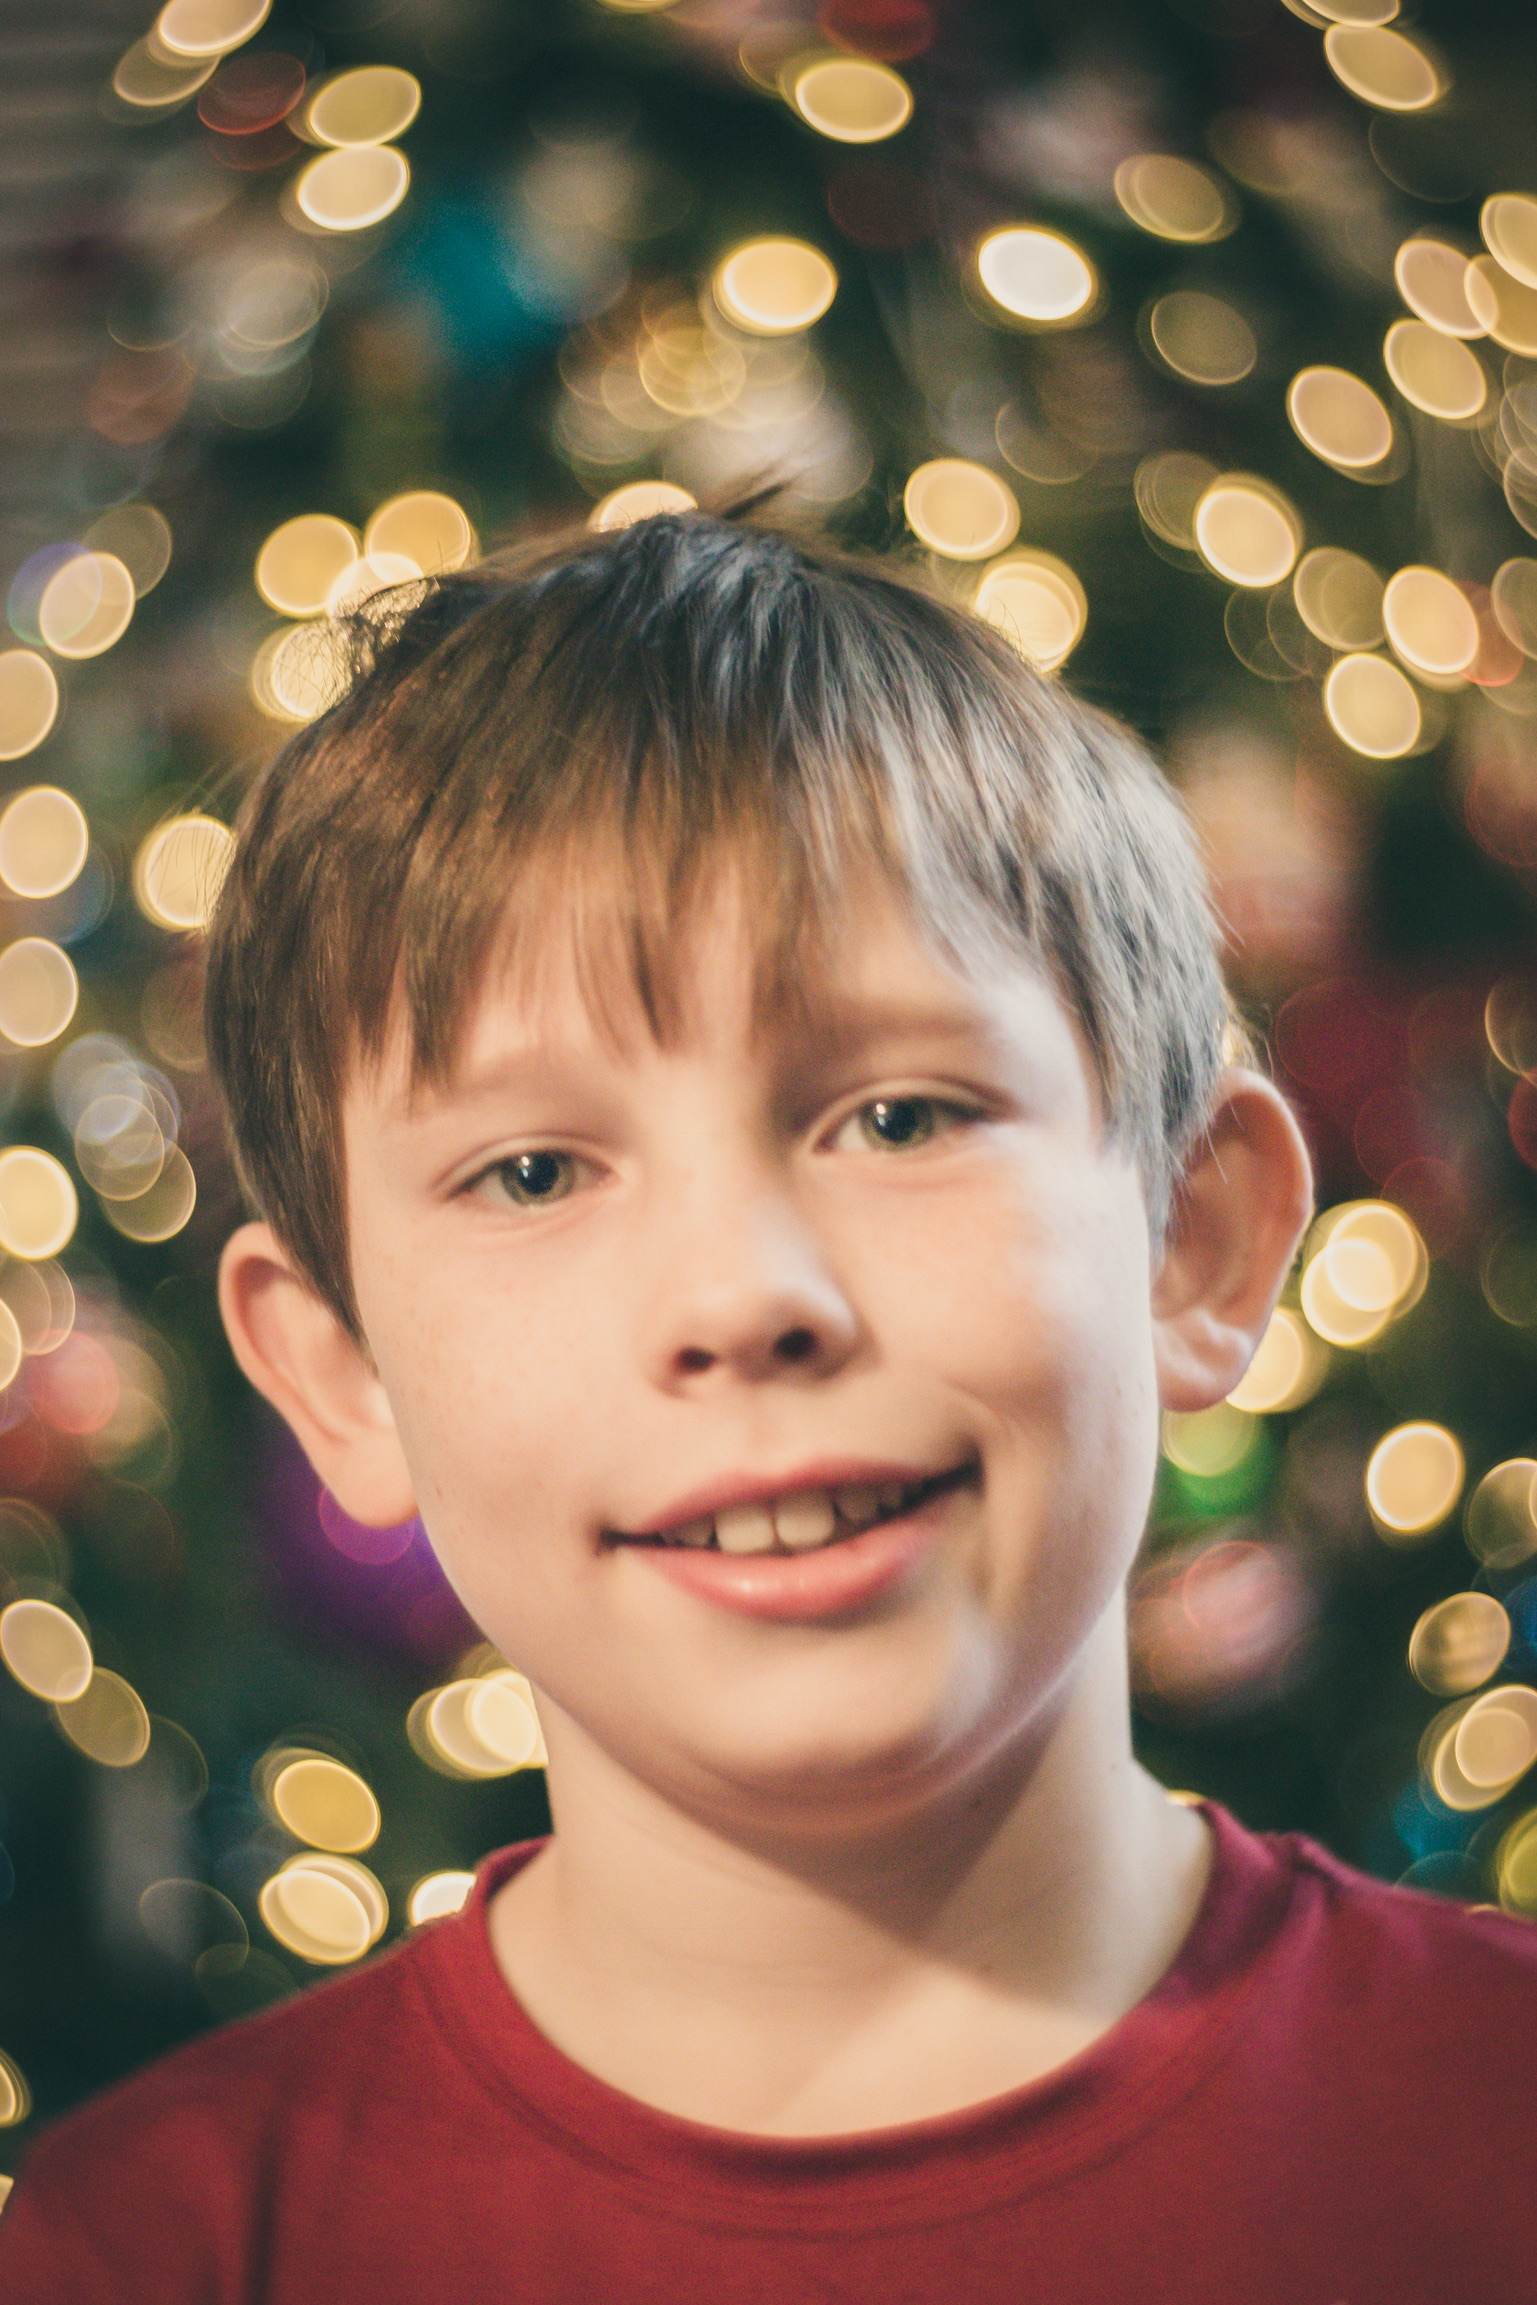 Will with Tree Lights in Background